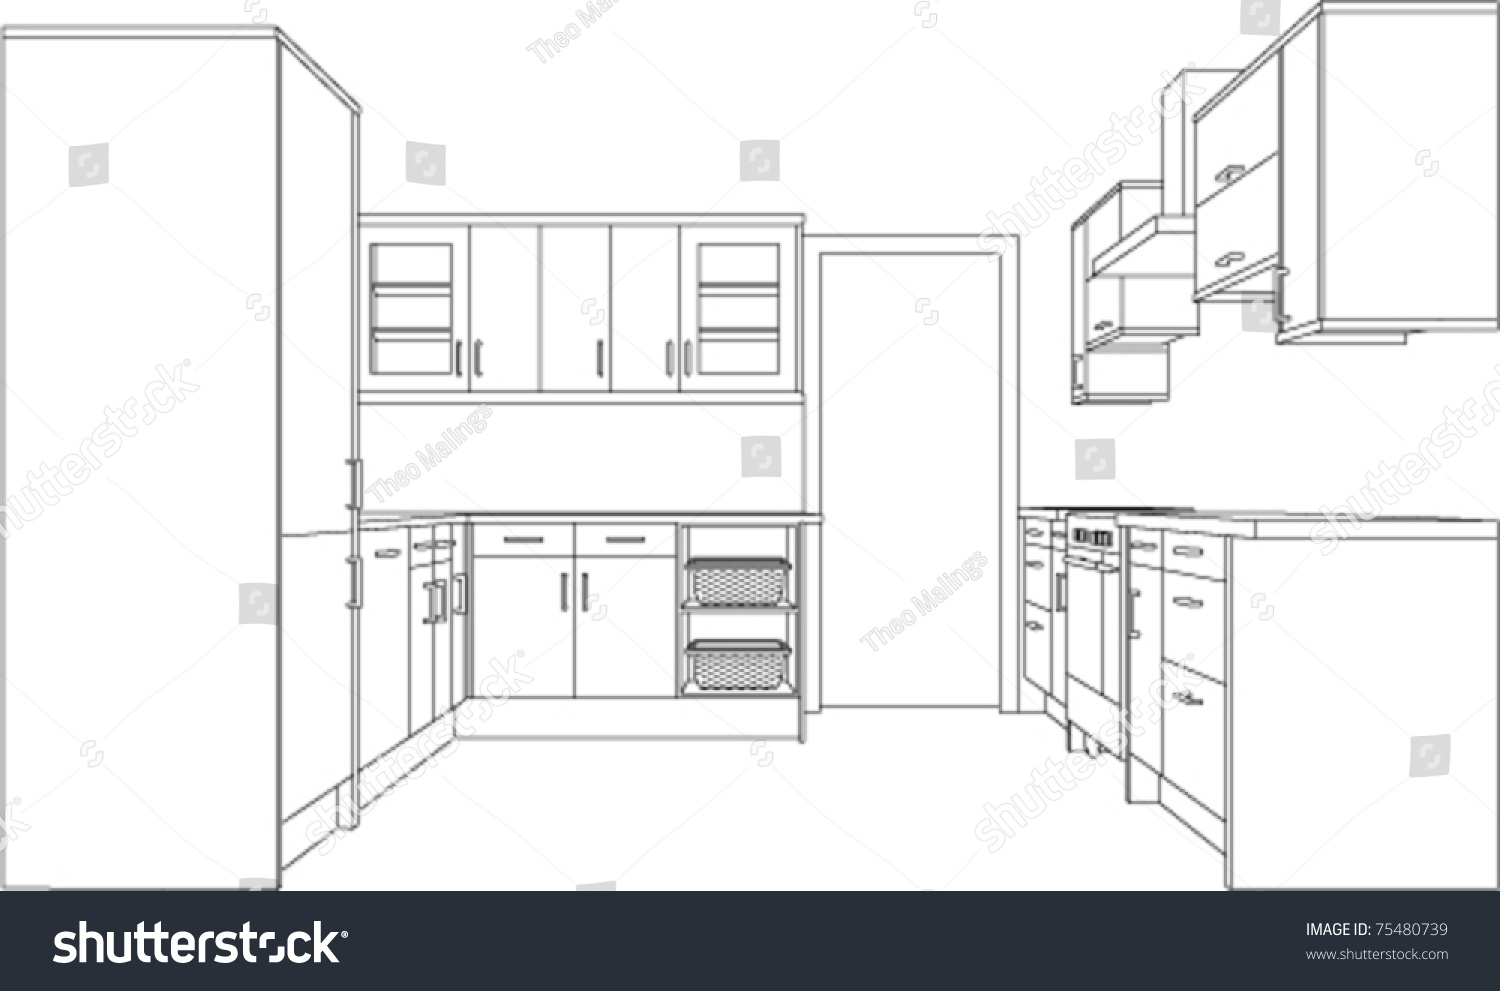 3d Single Point Perspective Line Drawing Stock Vector 75480739 Shutterstock